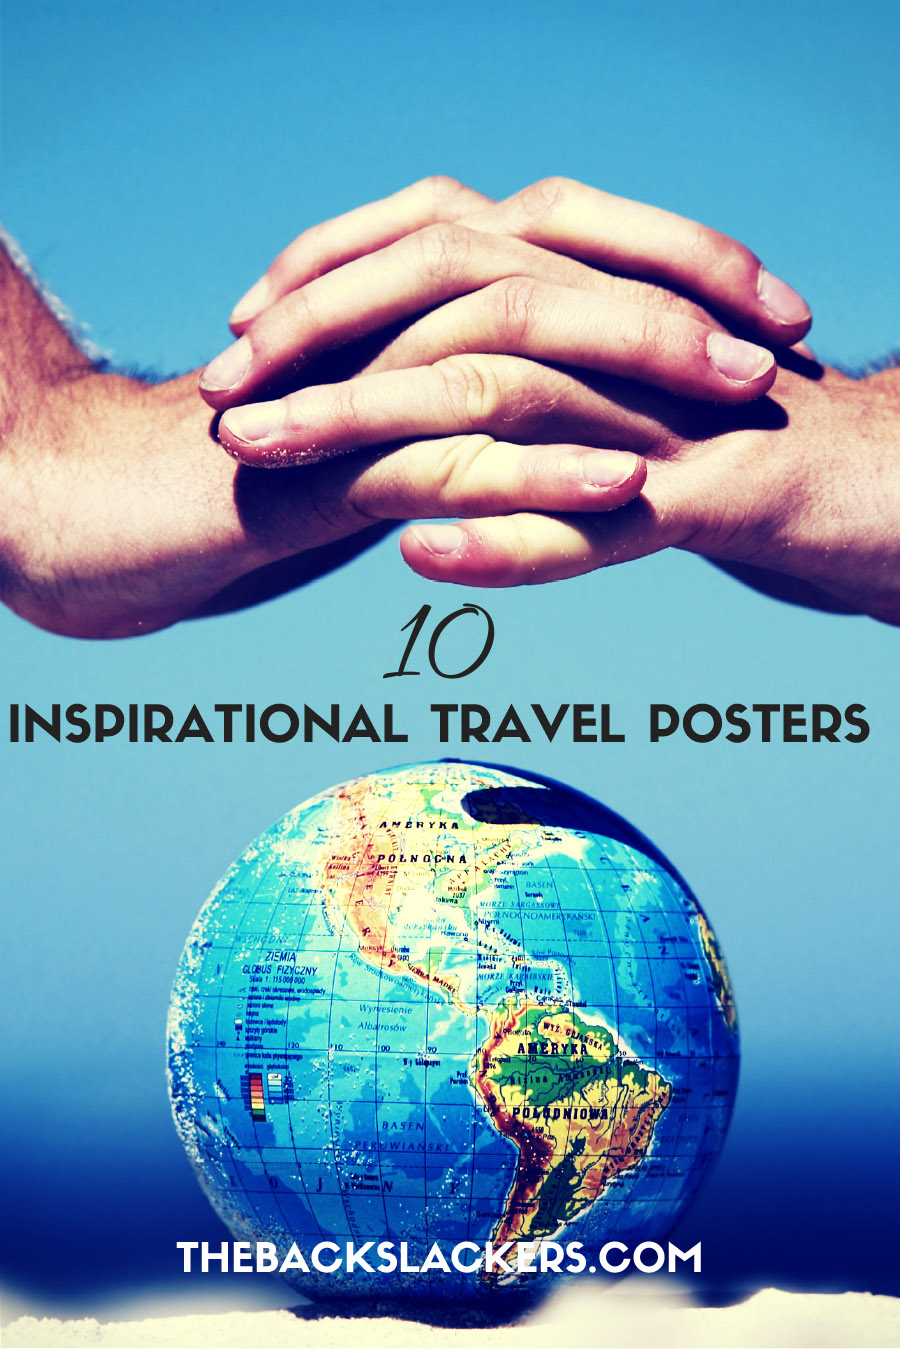 Ten Inspirational Travel Posters